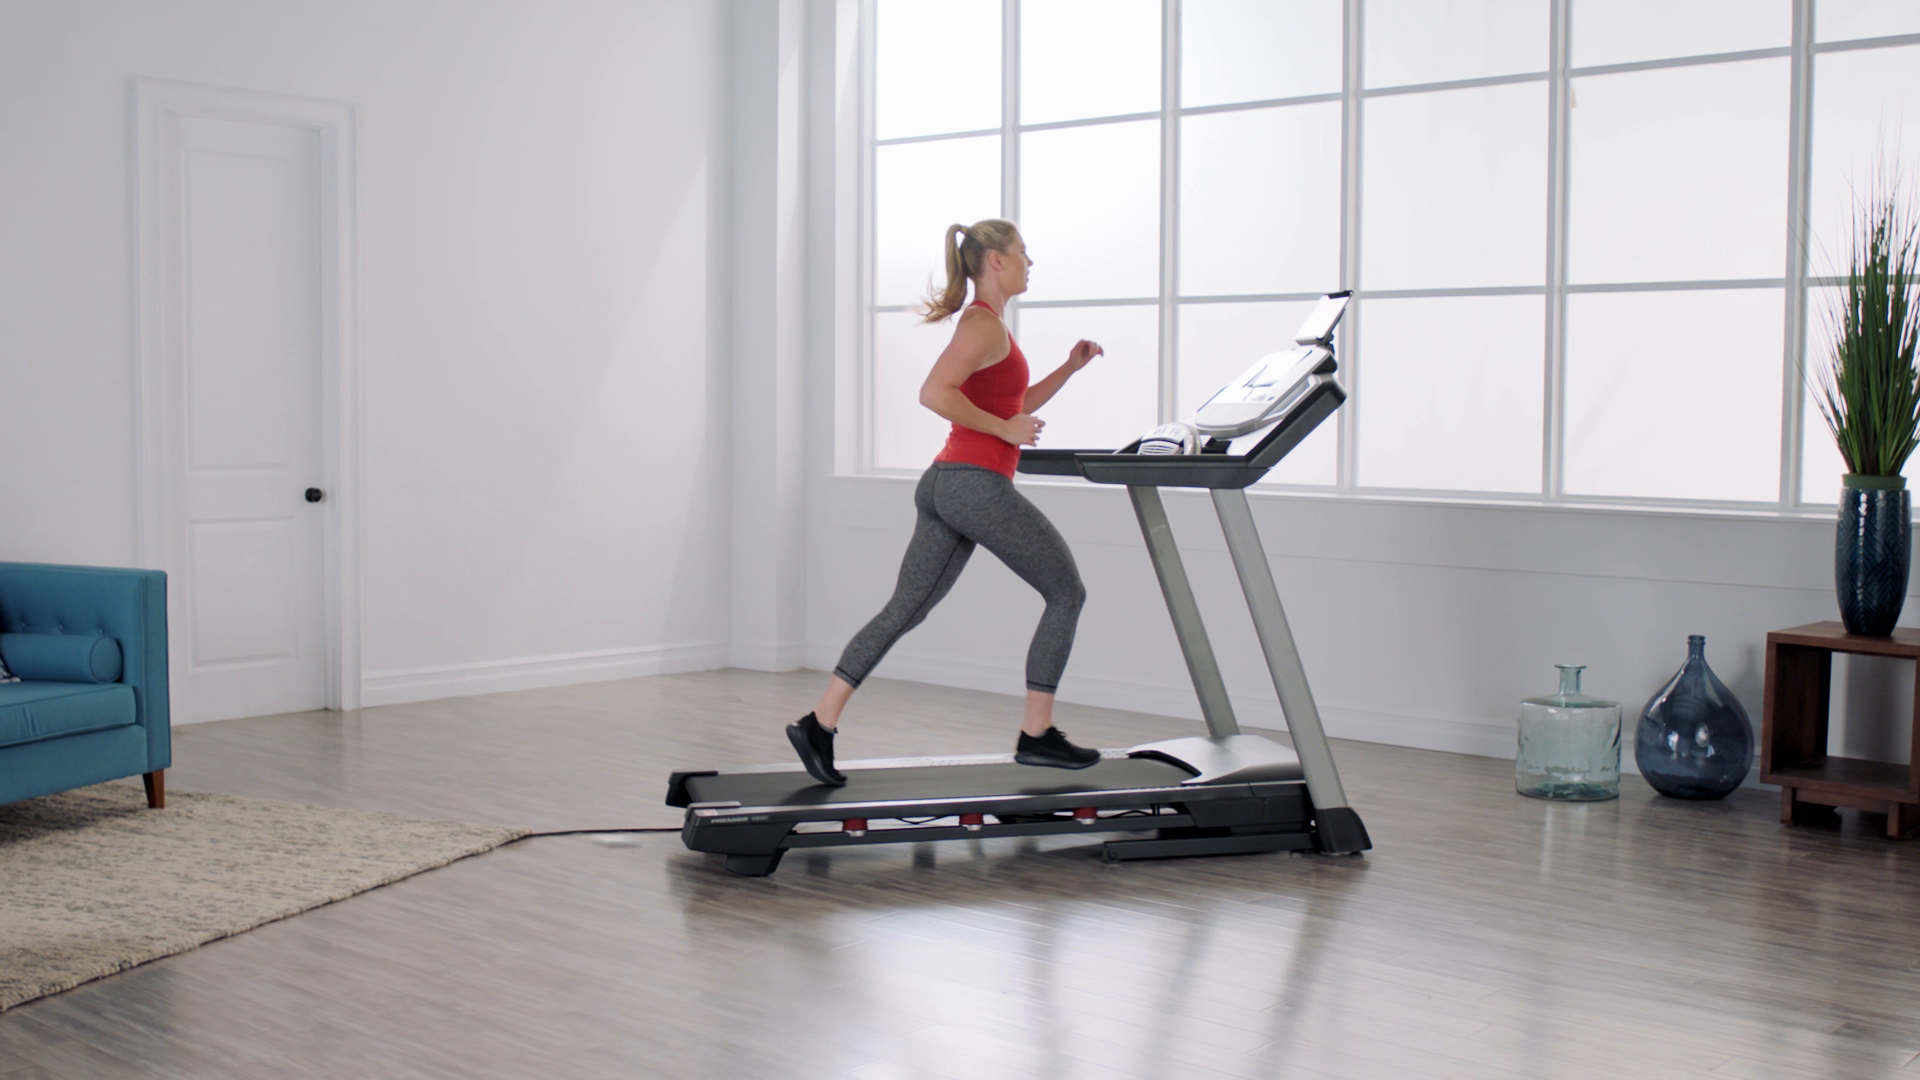 Proform Premier 1300 Smart Treadmill With 1 Year Ifit Coach Included